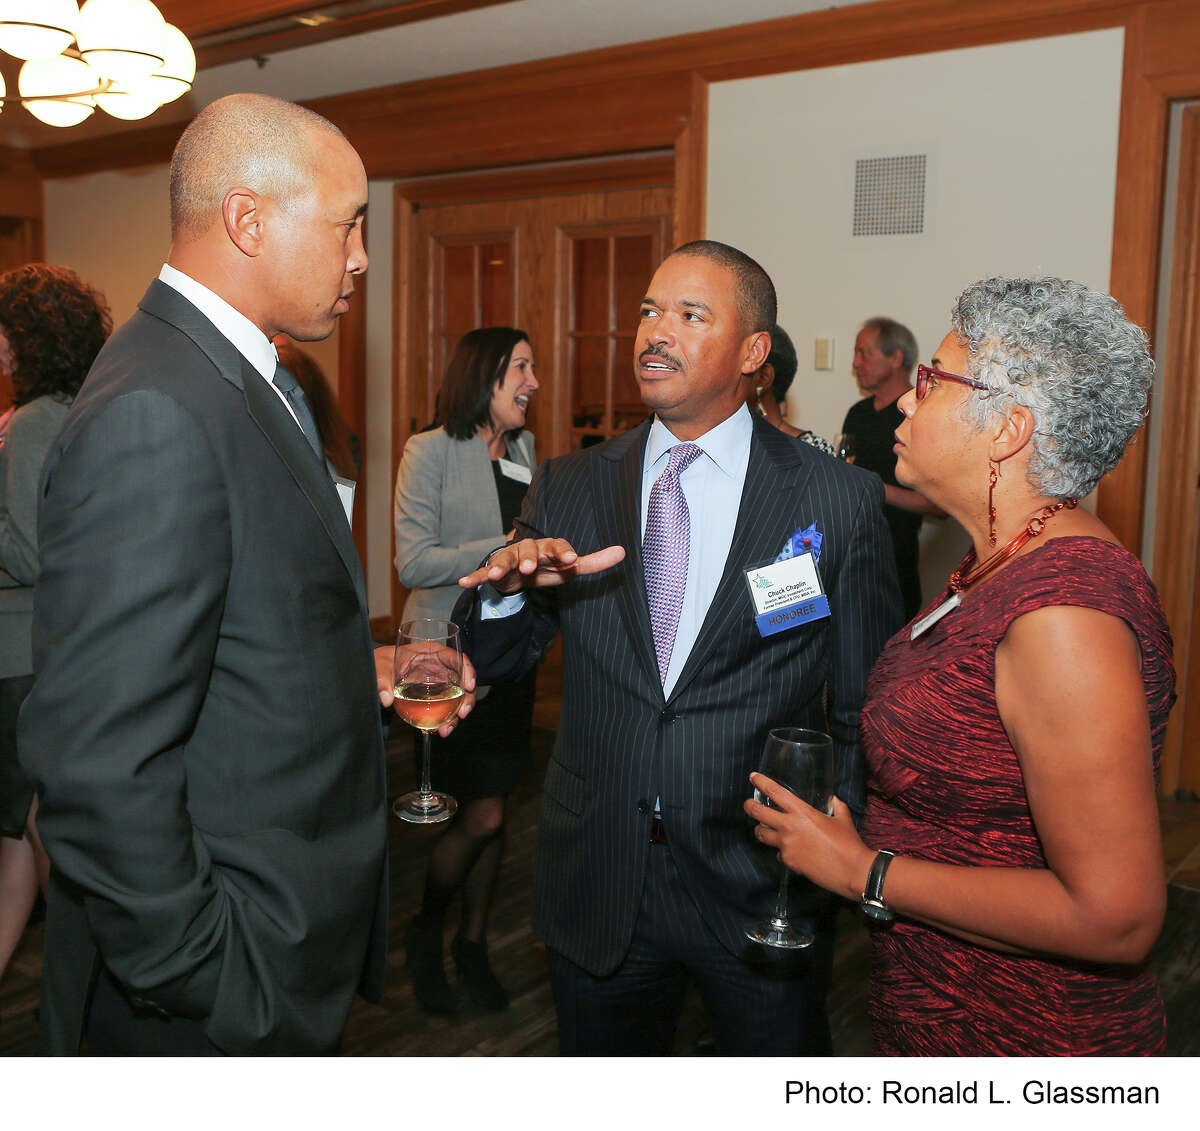 (Left to Right) John Starks (Former New York Knicks Shooting Guard), Chuck Chaplin (Director, MGIC Investment Corporation and Former President & Chief Financial Officer, MBIA), and Pamela A. Lewis (Director, All Stars Project of Bridgeport and Vice President/Youth Programs, All Stars Project, Inc.) November 7, 2016 at